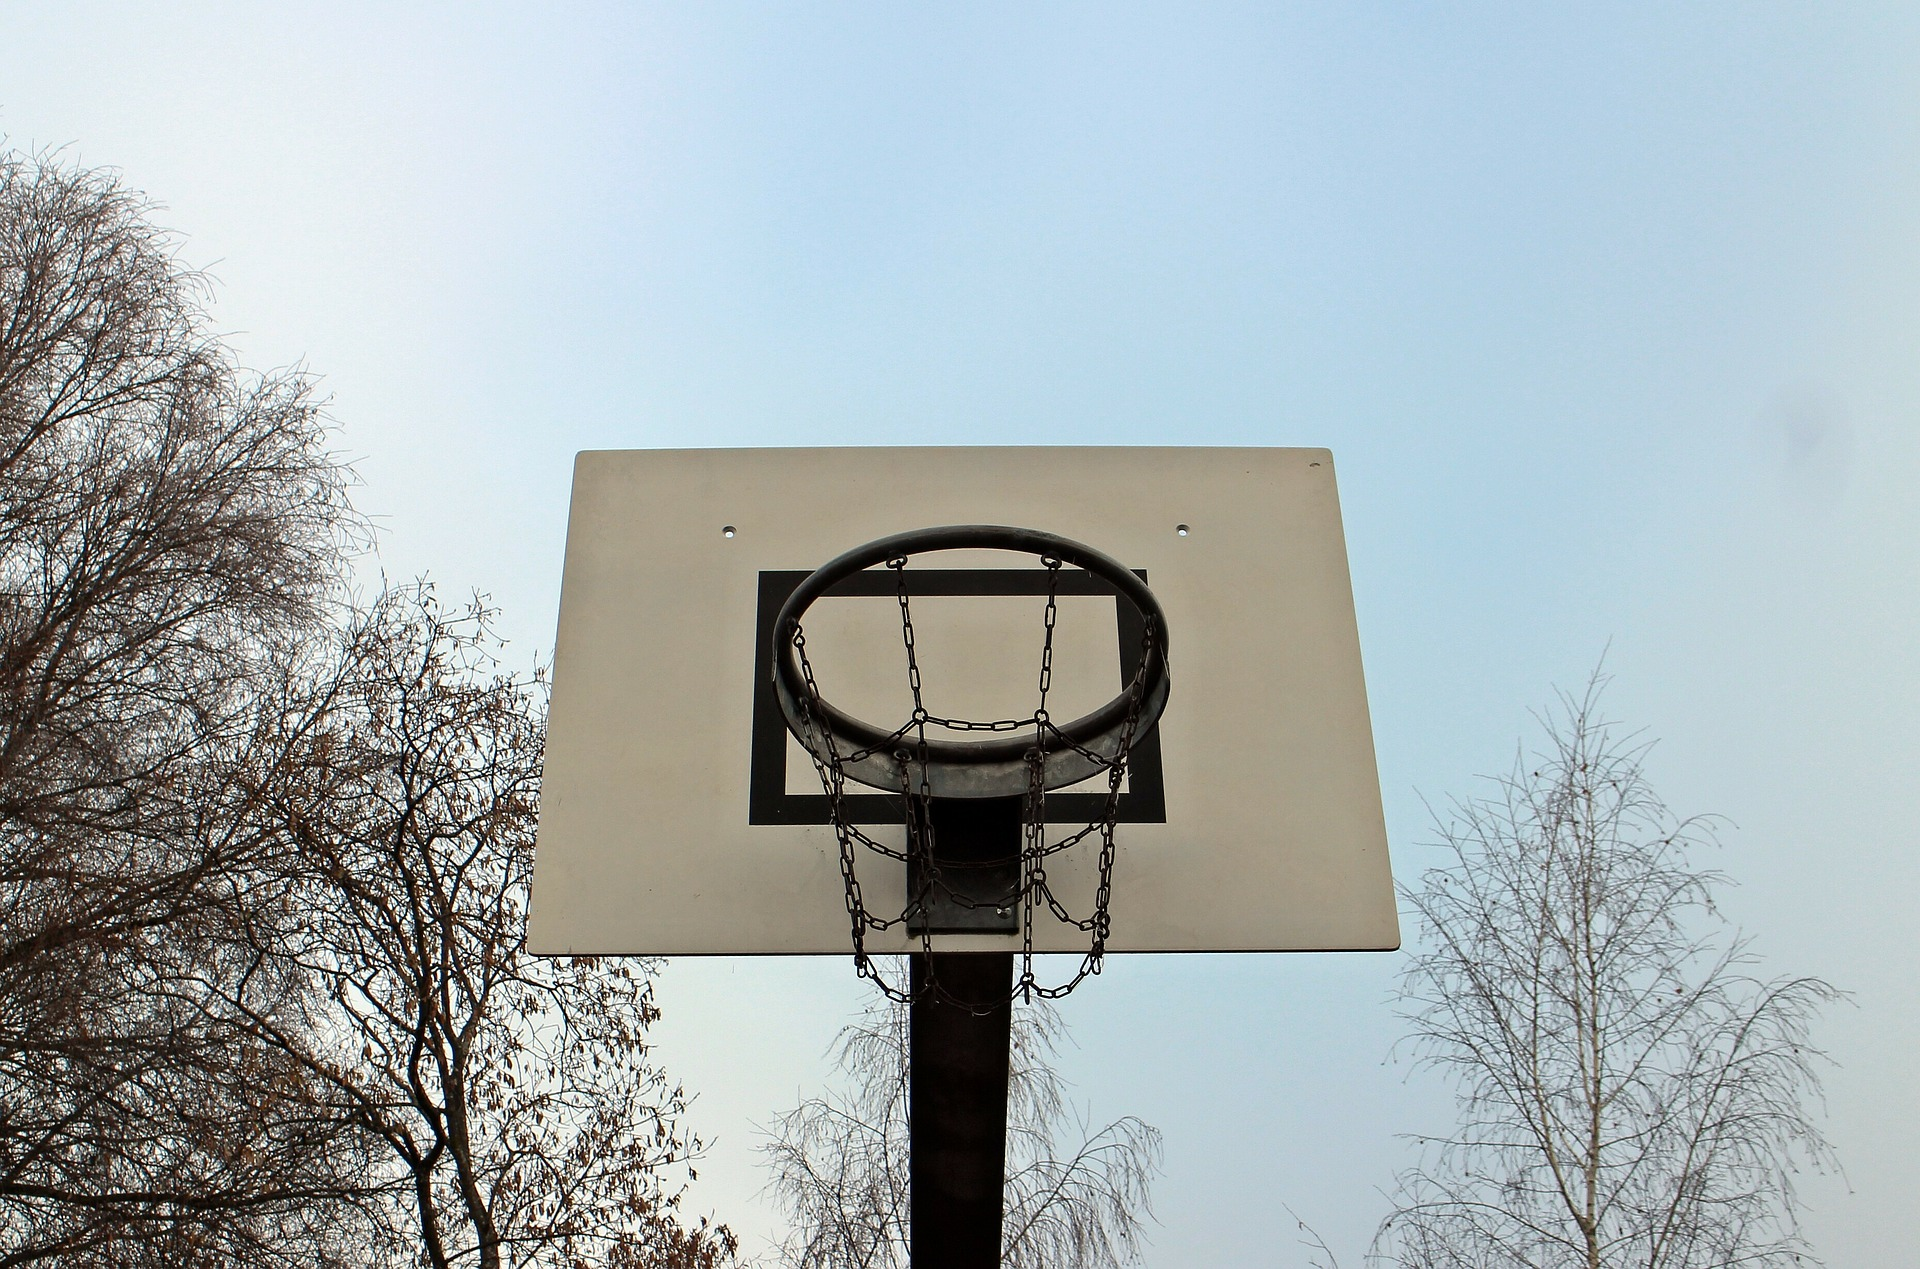 Best Portable Basketball Hoop for Your Driveway